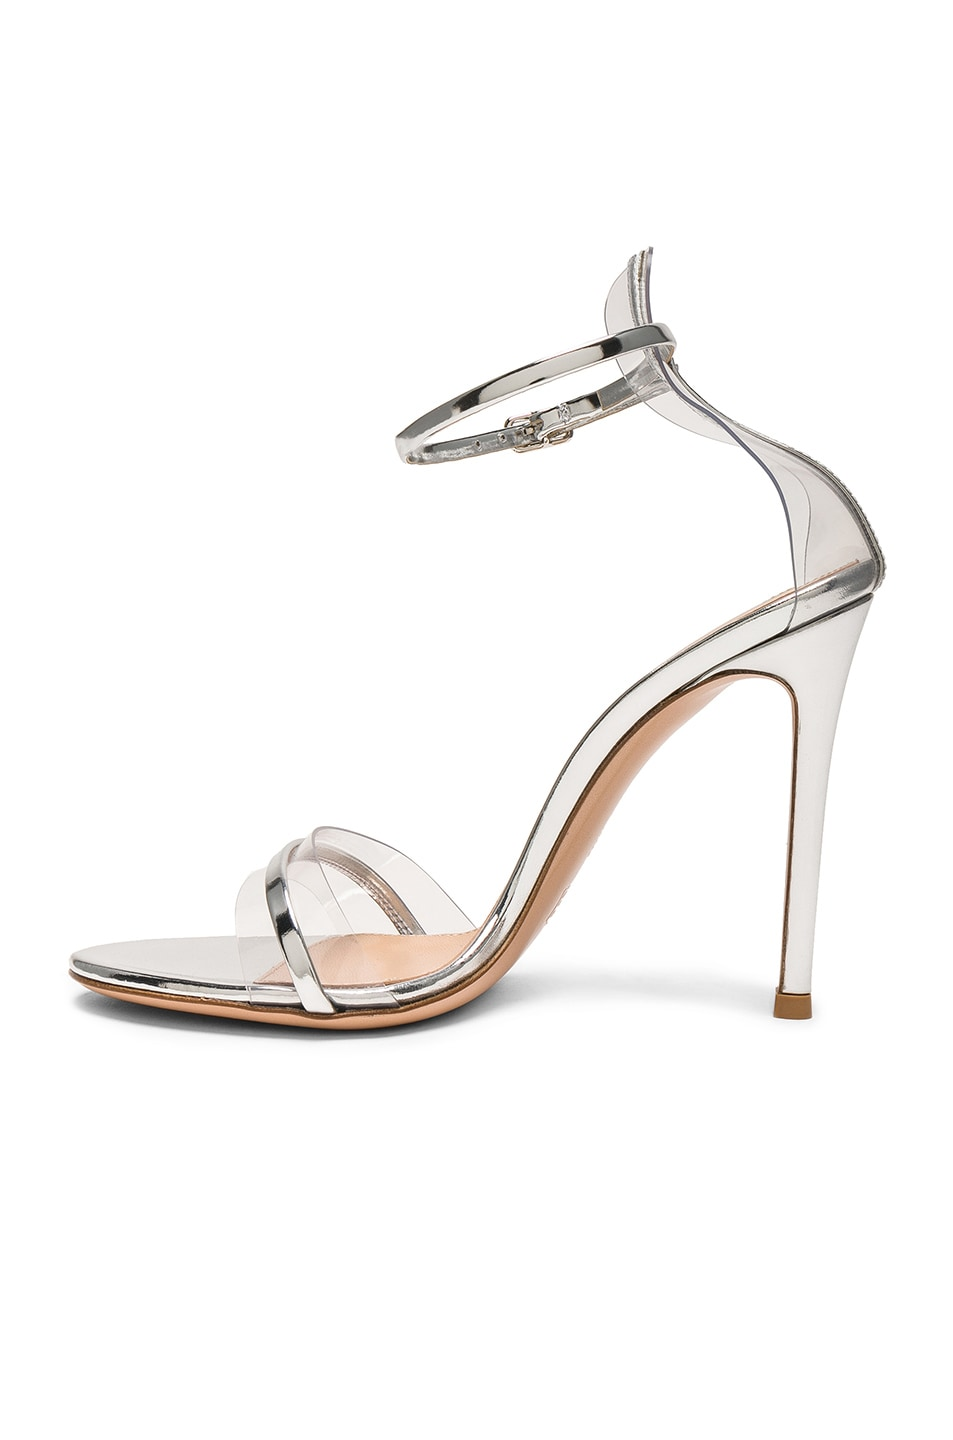 Image 5 of Gianvito Rossi Leather Plexi G-String Heels in Metal Silver & Transparent